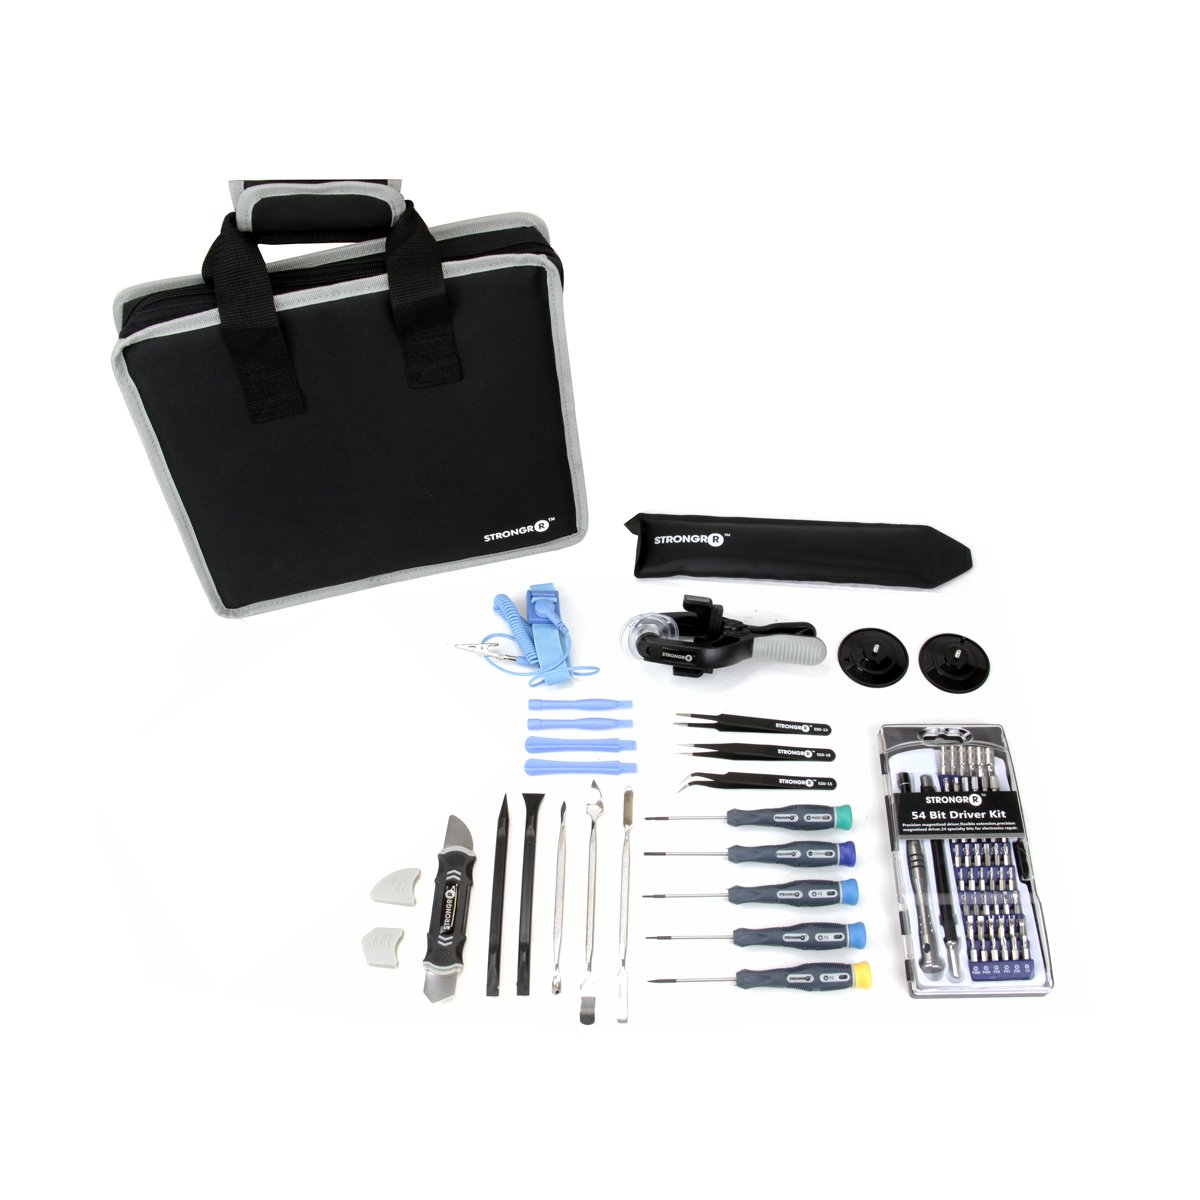 LB1 High Performance Electronics Complete Professional Precision Disassembly Tool Kit for Repairing Lenovo ThinkPad X1 Yoga 20FQ005PAU Repair Hand Tool Set 70%OFF